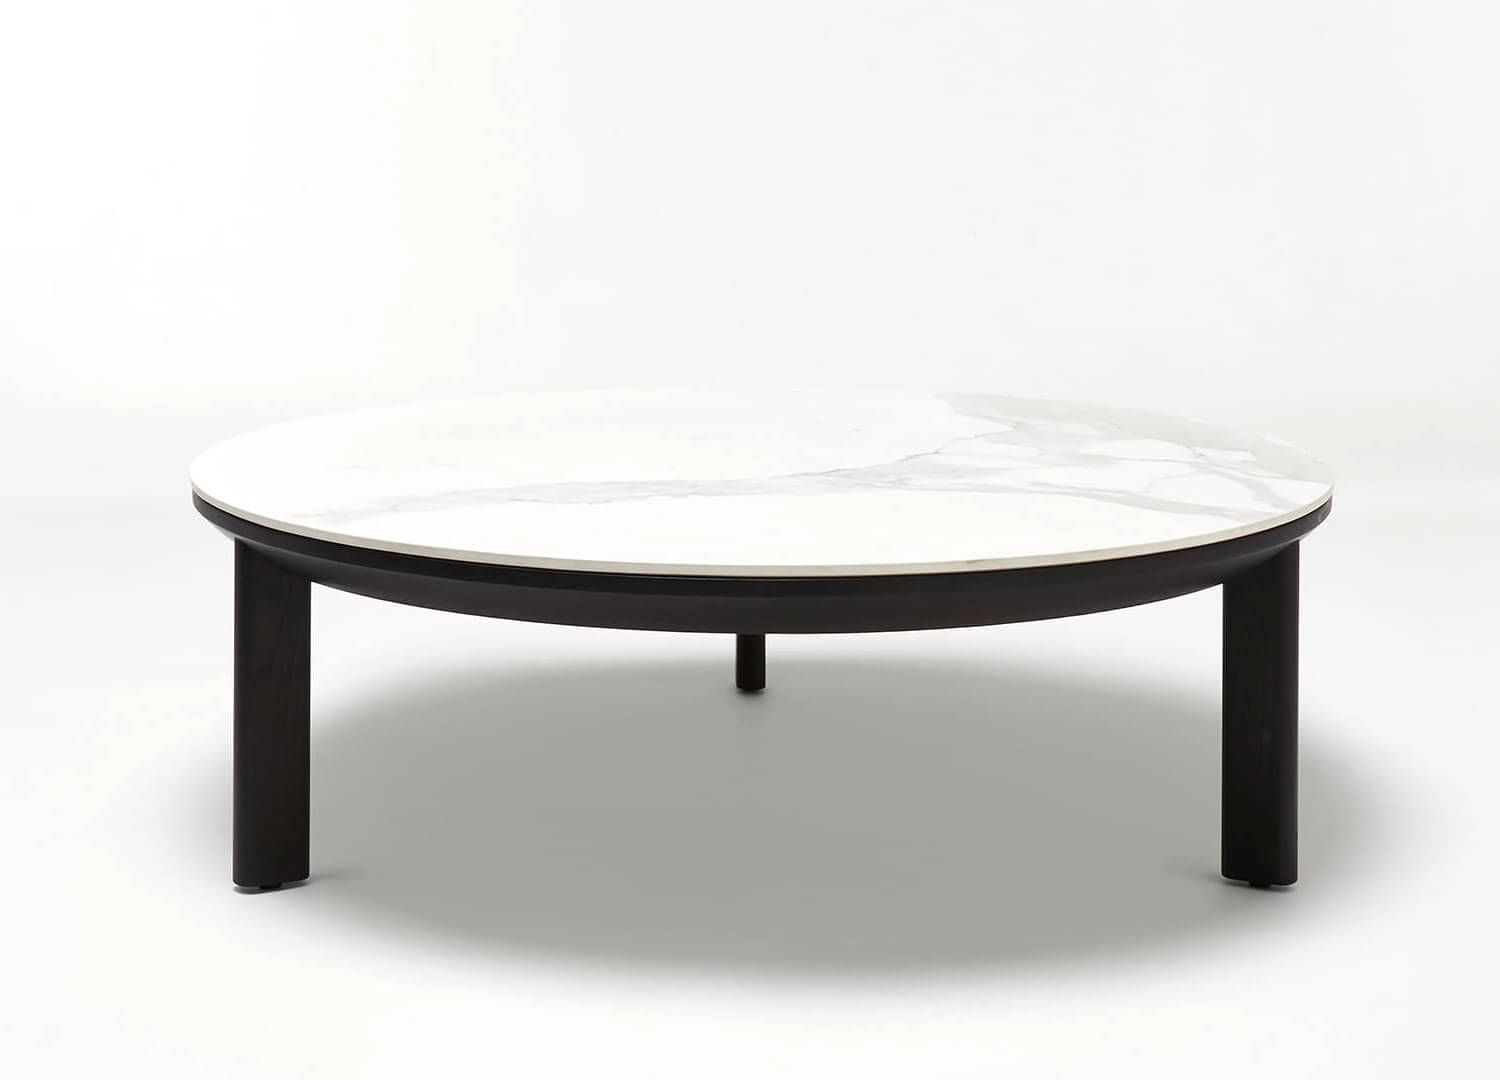 Couchtisch Glas Ligne Roset Kett Otway Coffee Table For Cosh Living 傢俱 桌子類 In